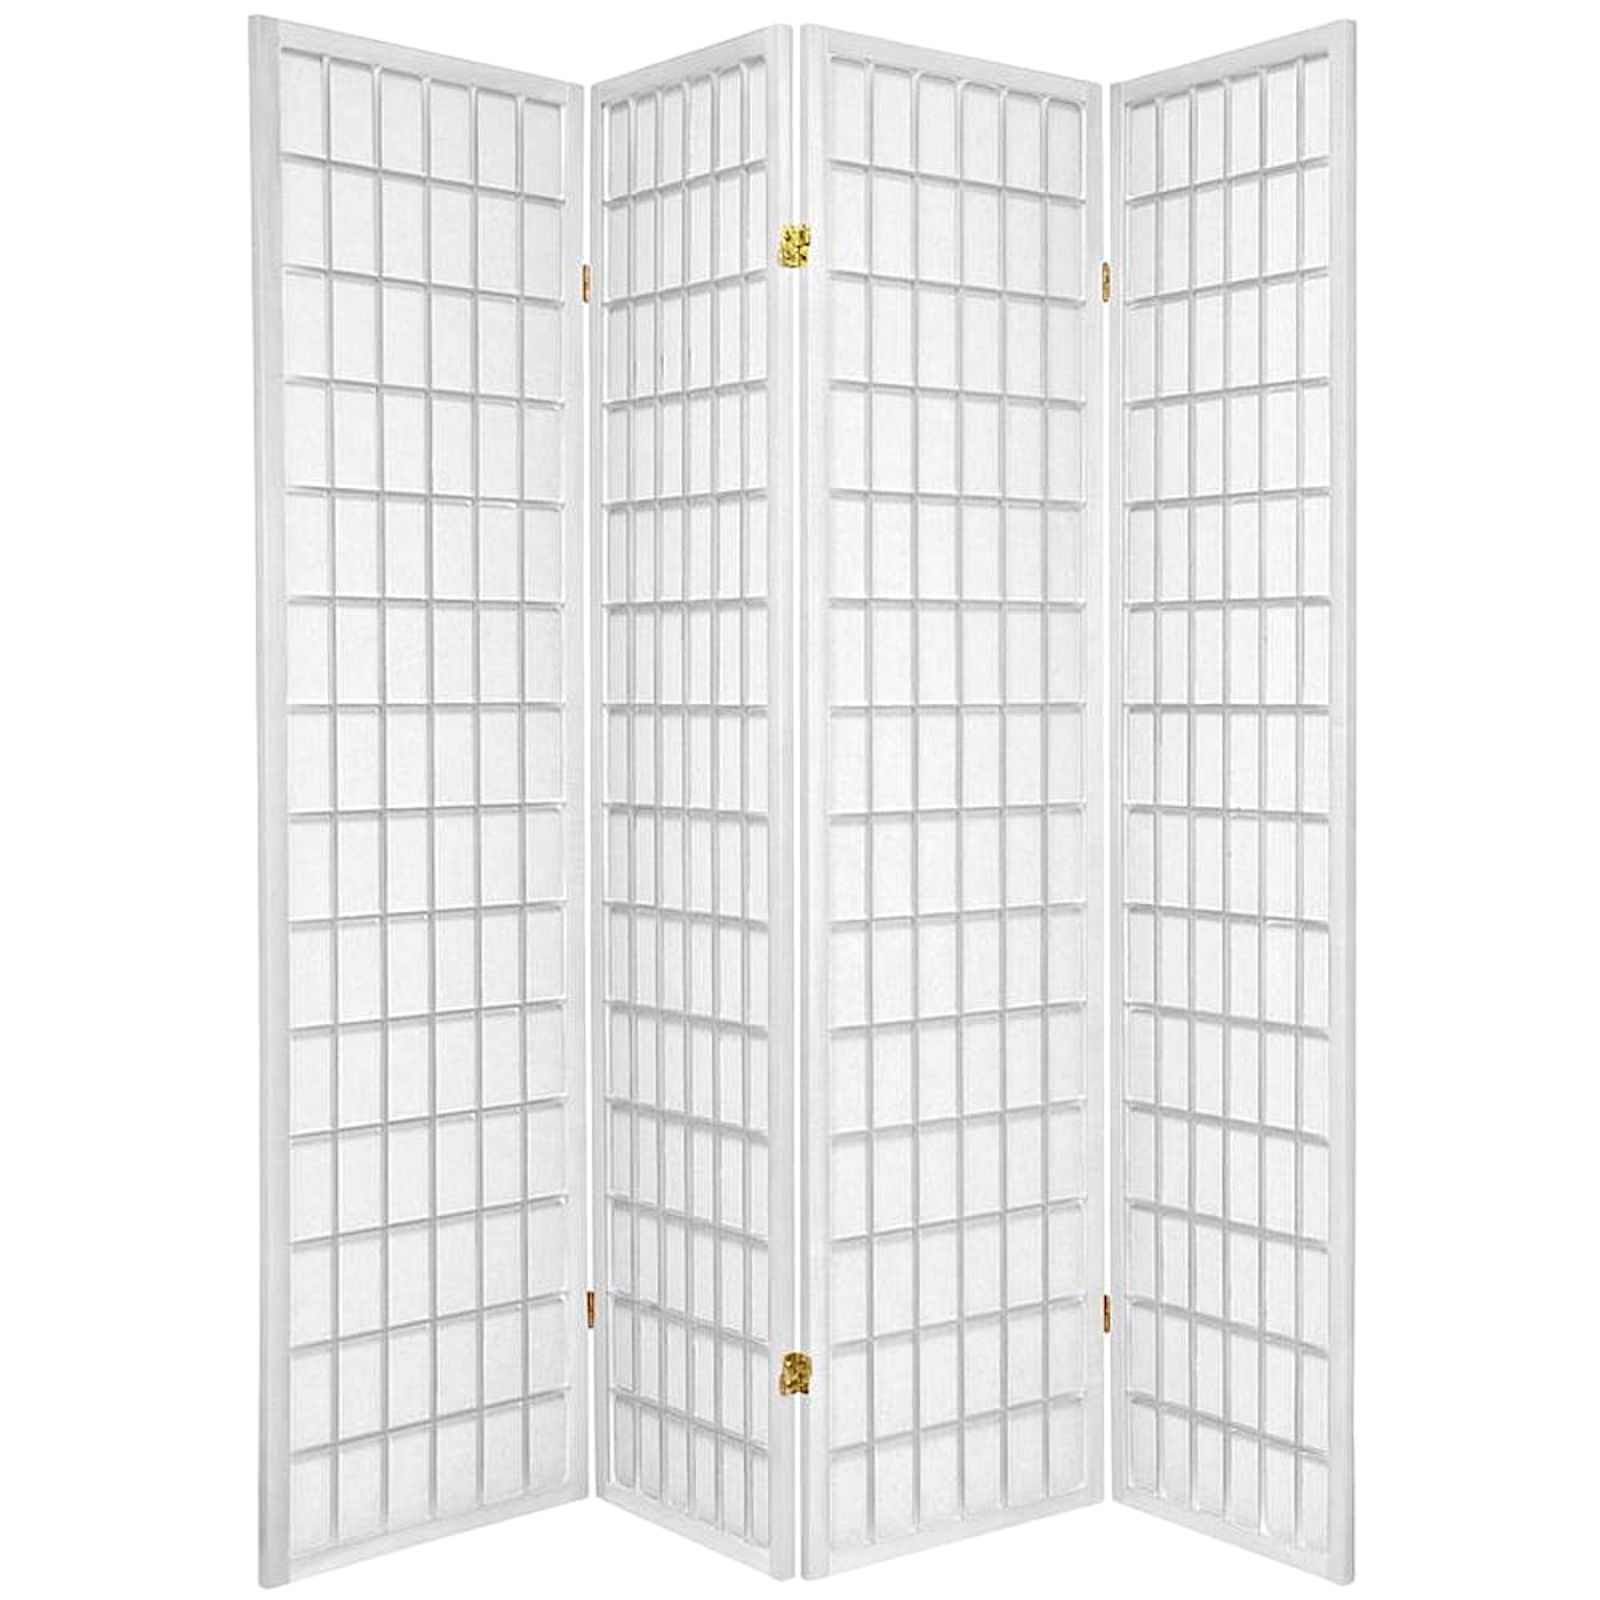 Legacy Decor 4 Panel Japanese Oriental Style Room Screen Divider White Color